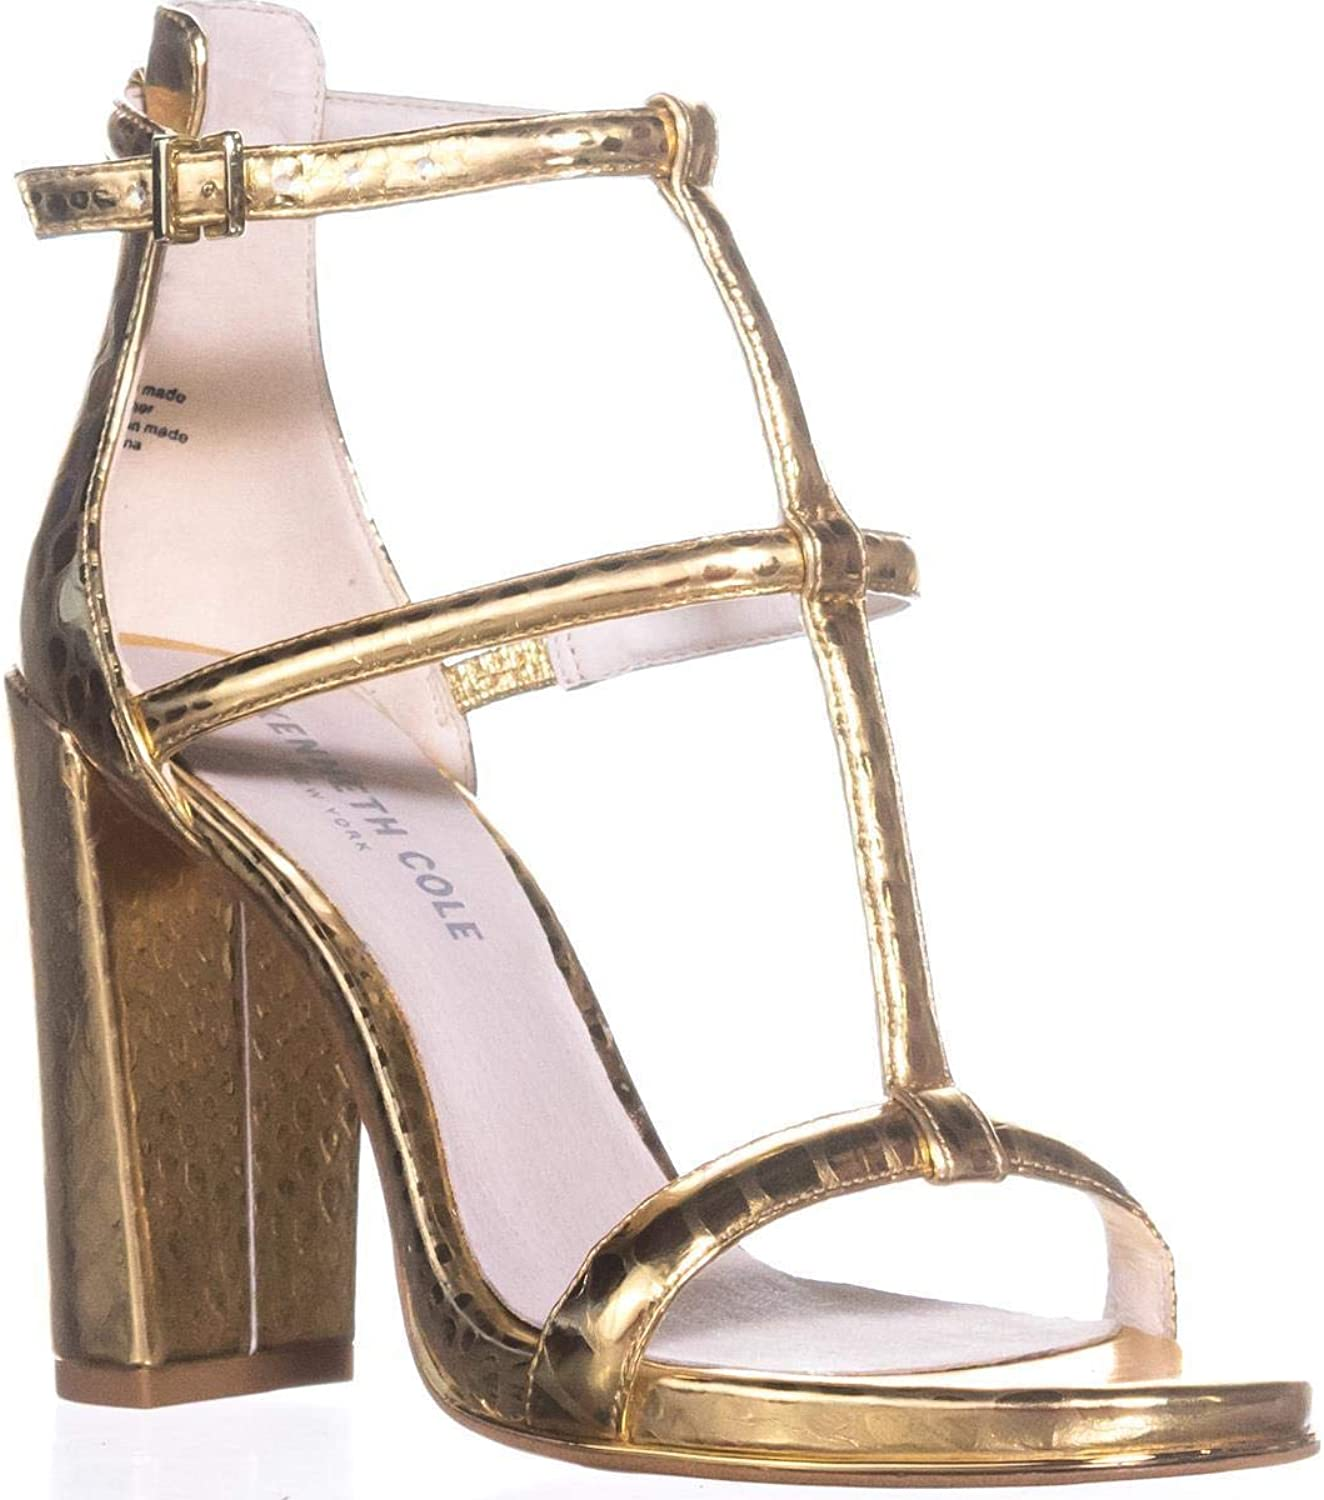 Kenneth Cole Deandra 2 Studded Dress Sandals, gold